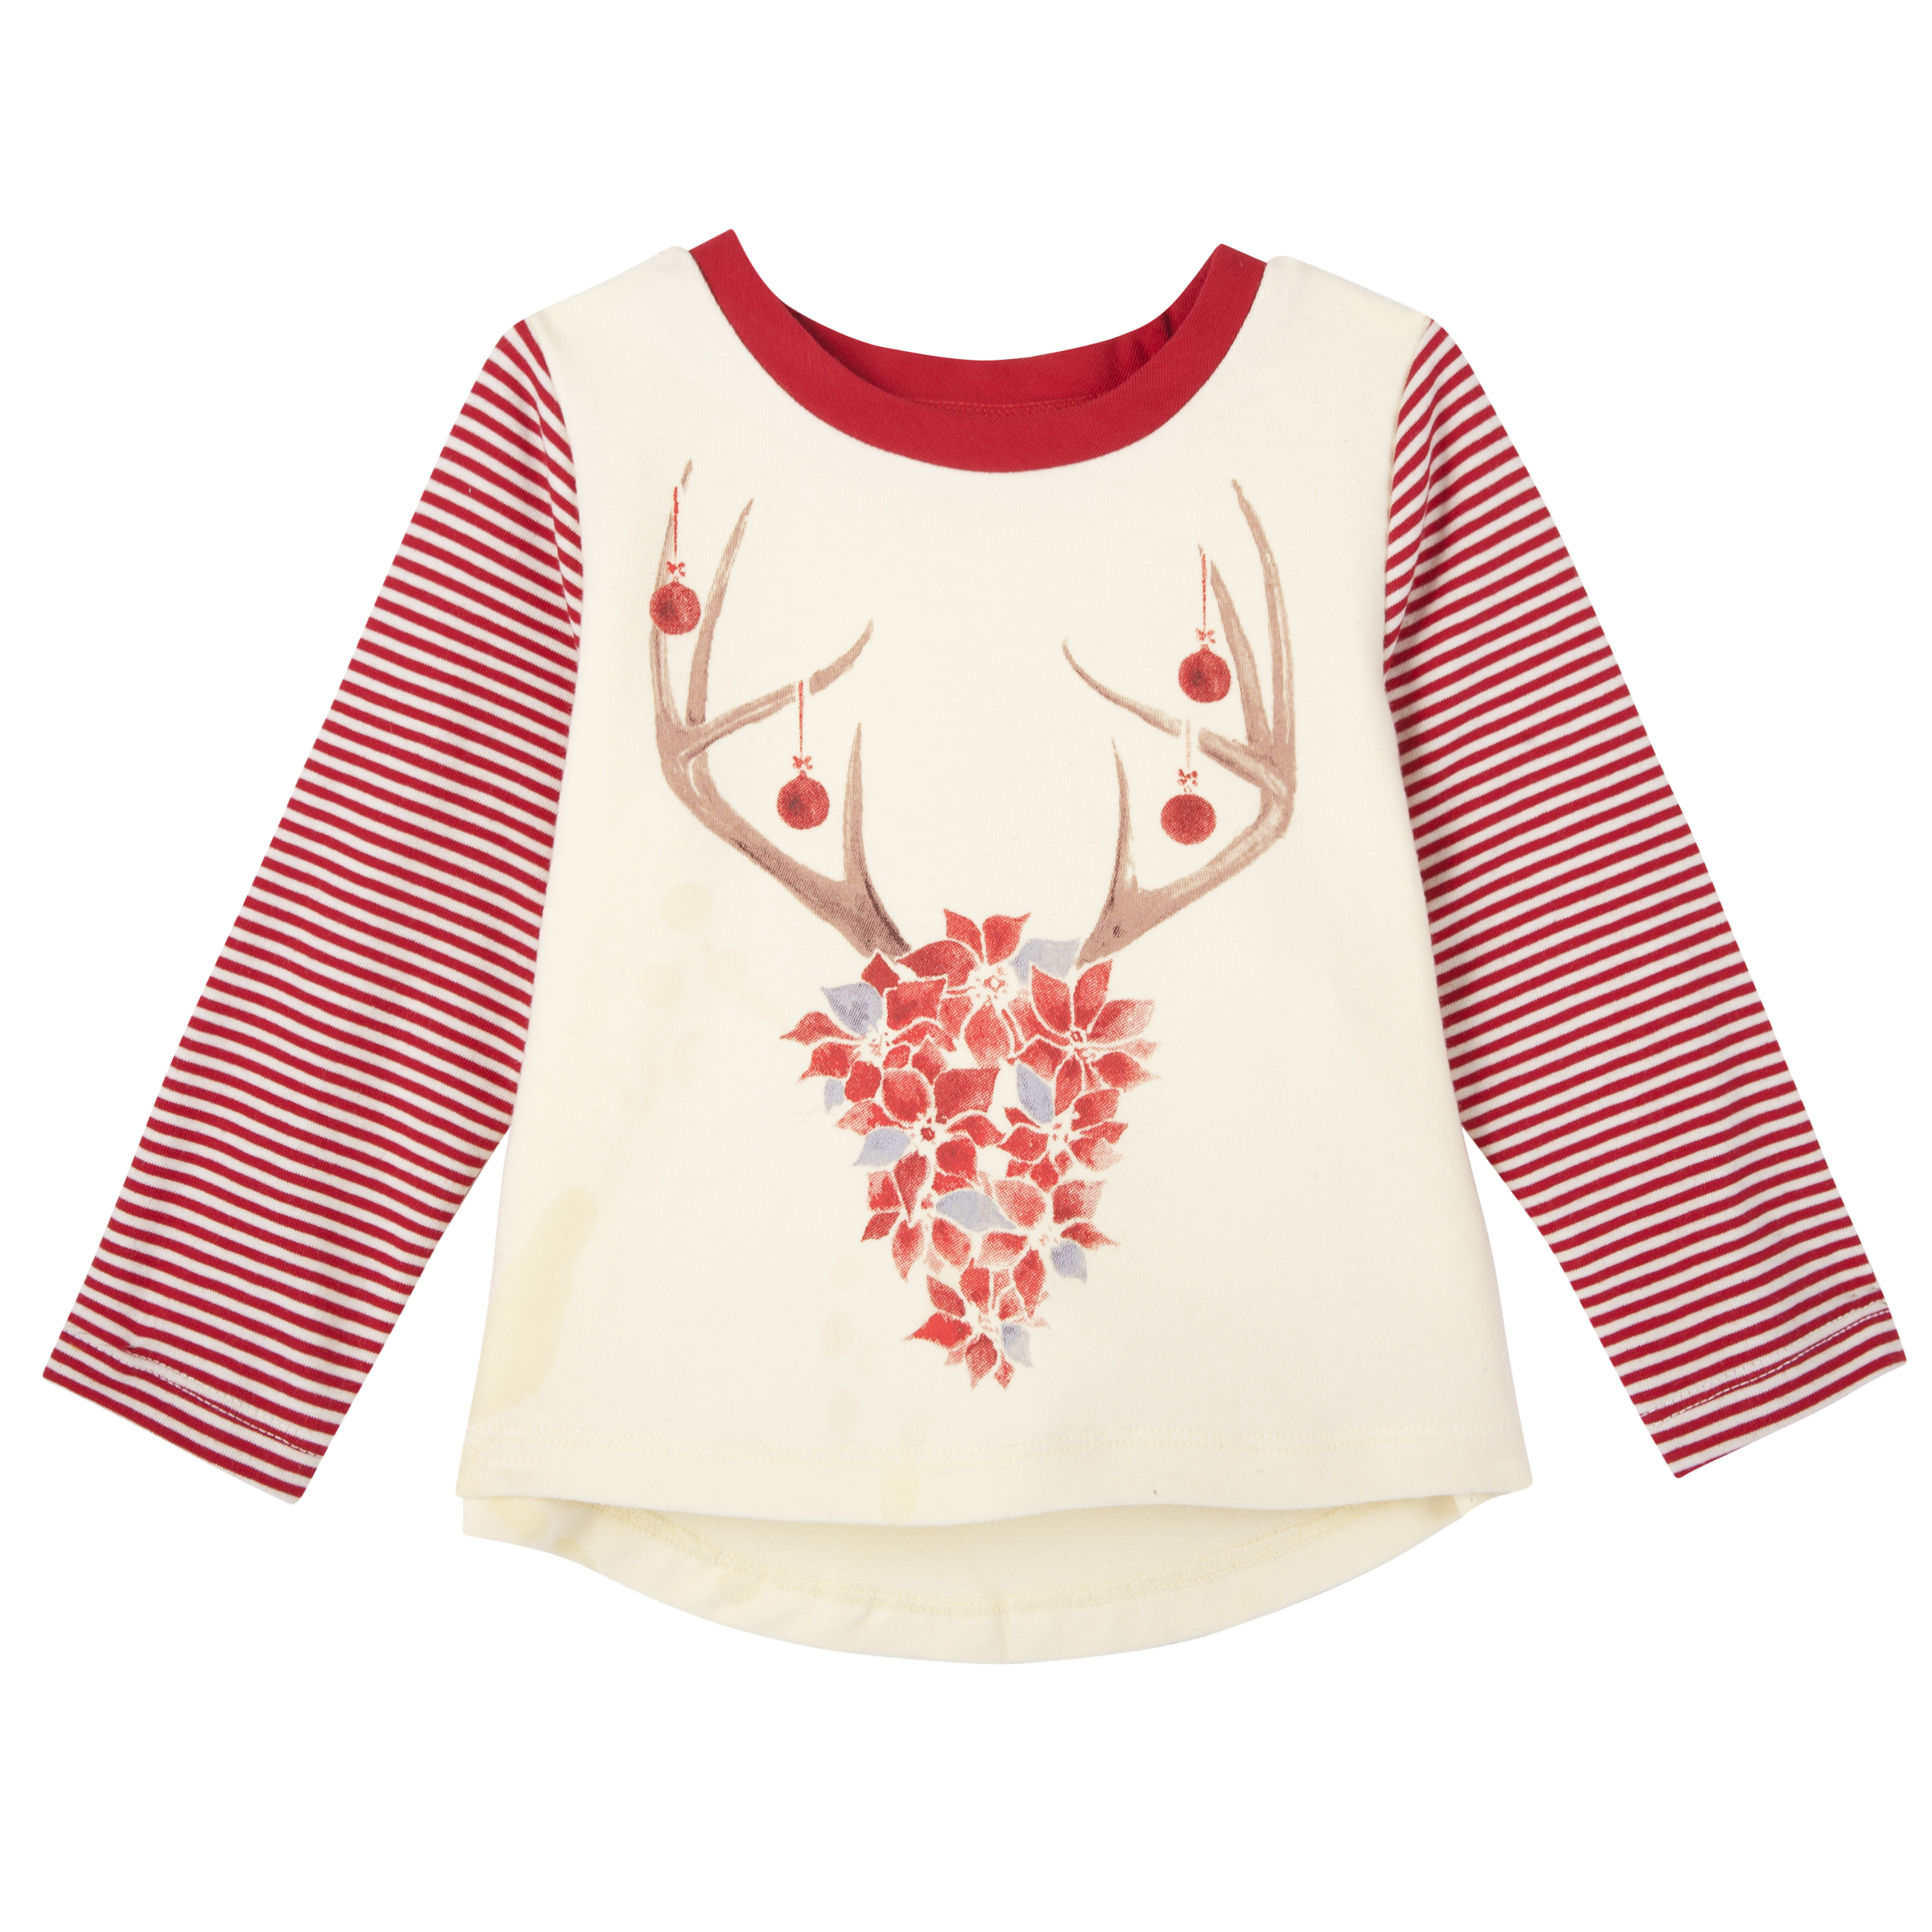 Andy & Evan Holiday Poinsettias Deer Tee   Olive and Gray